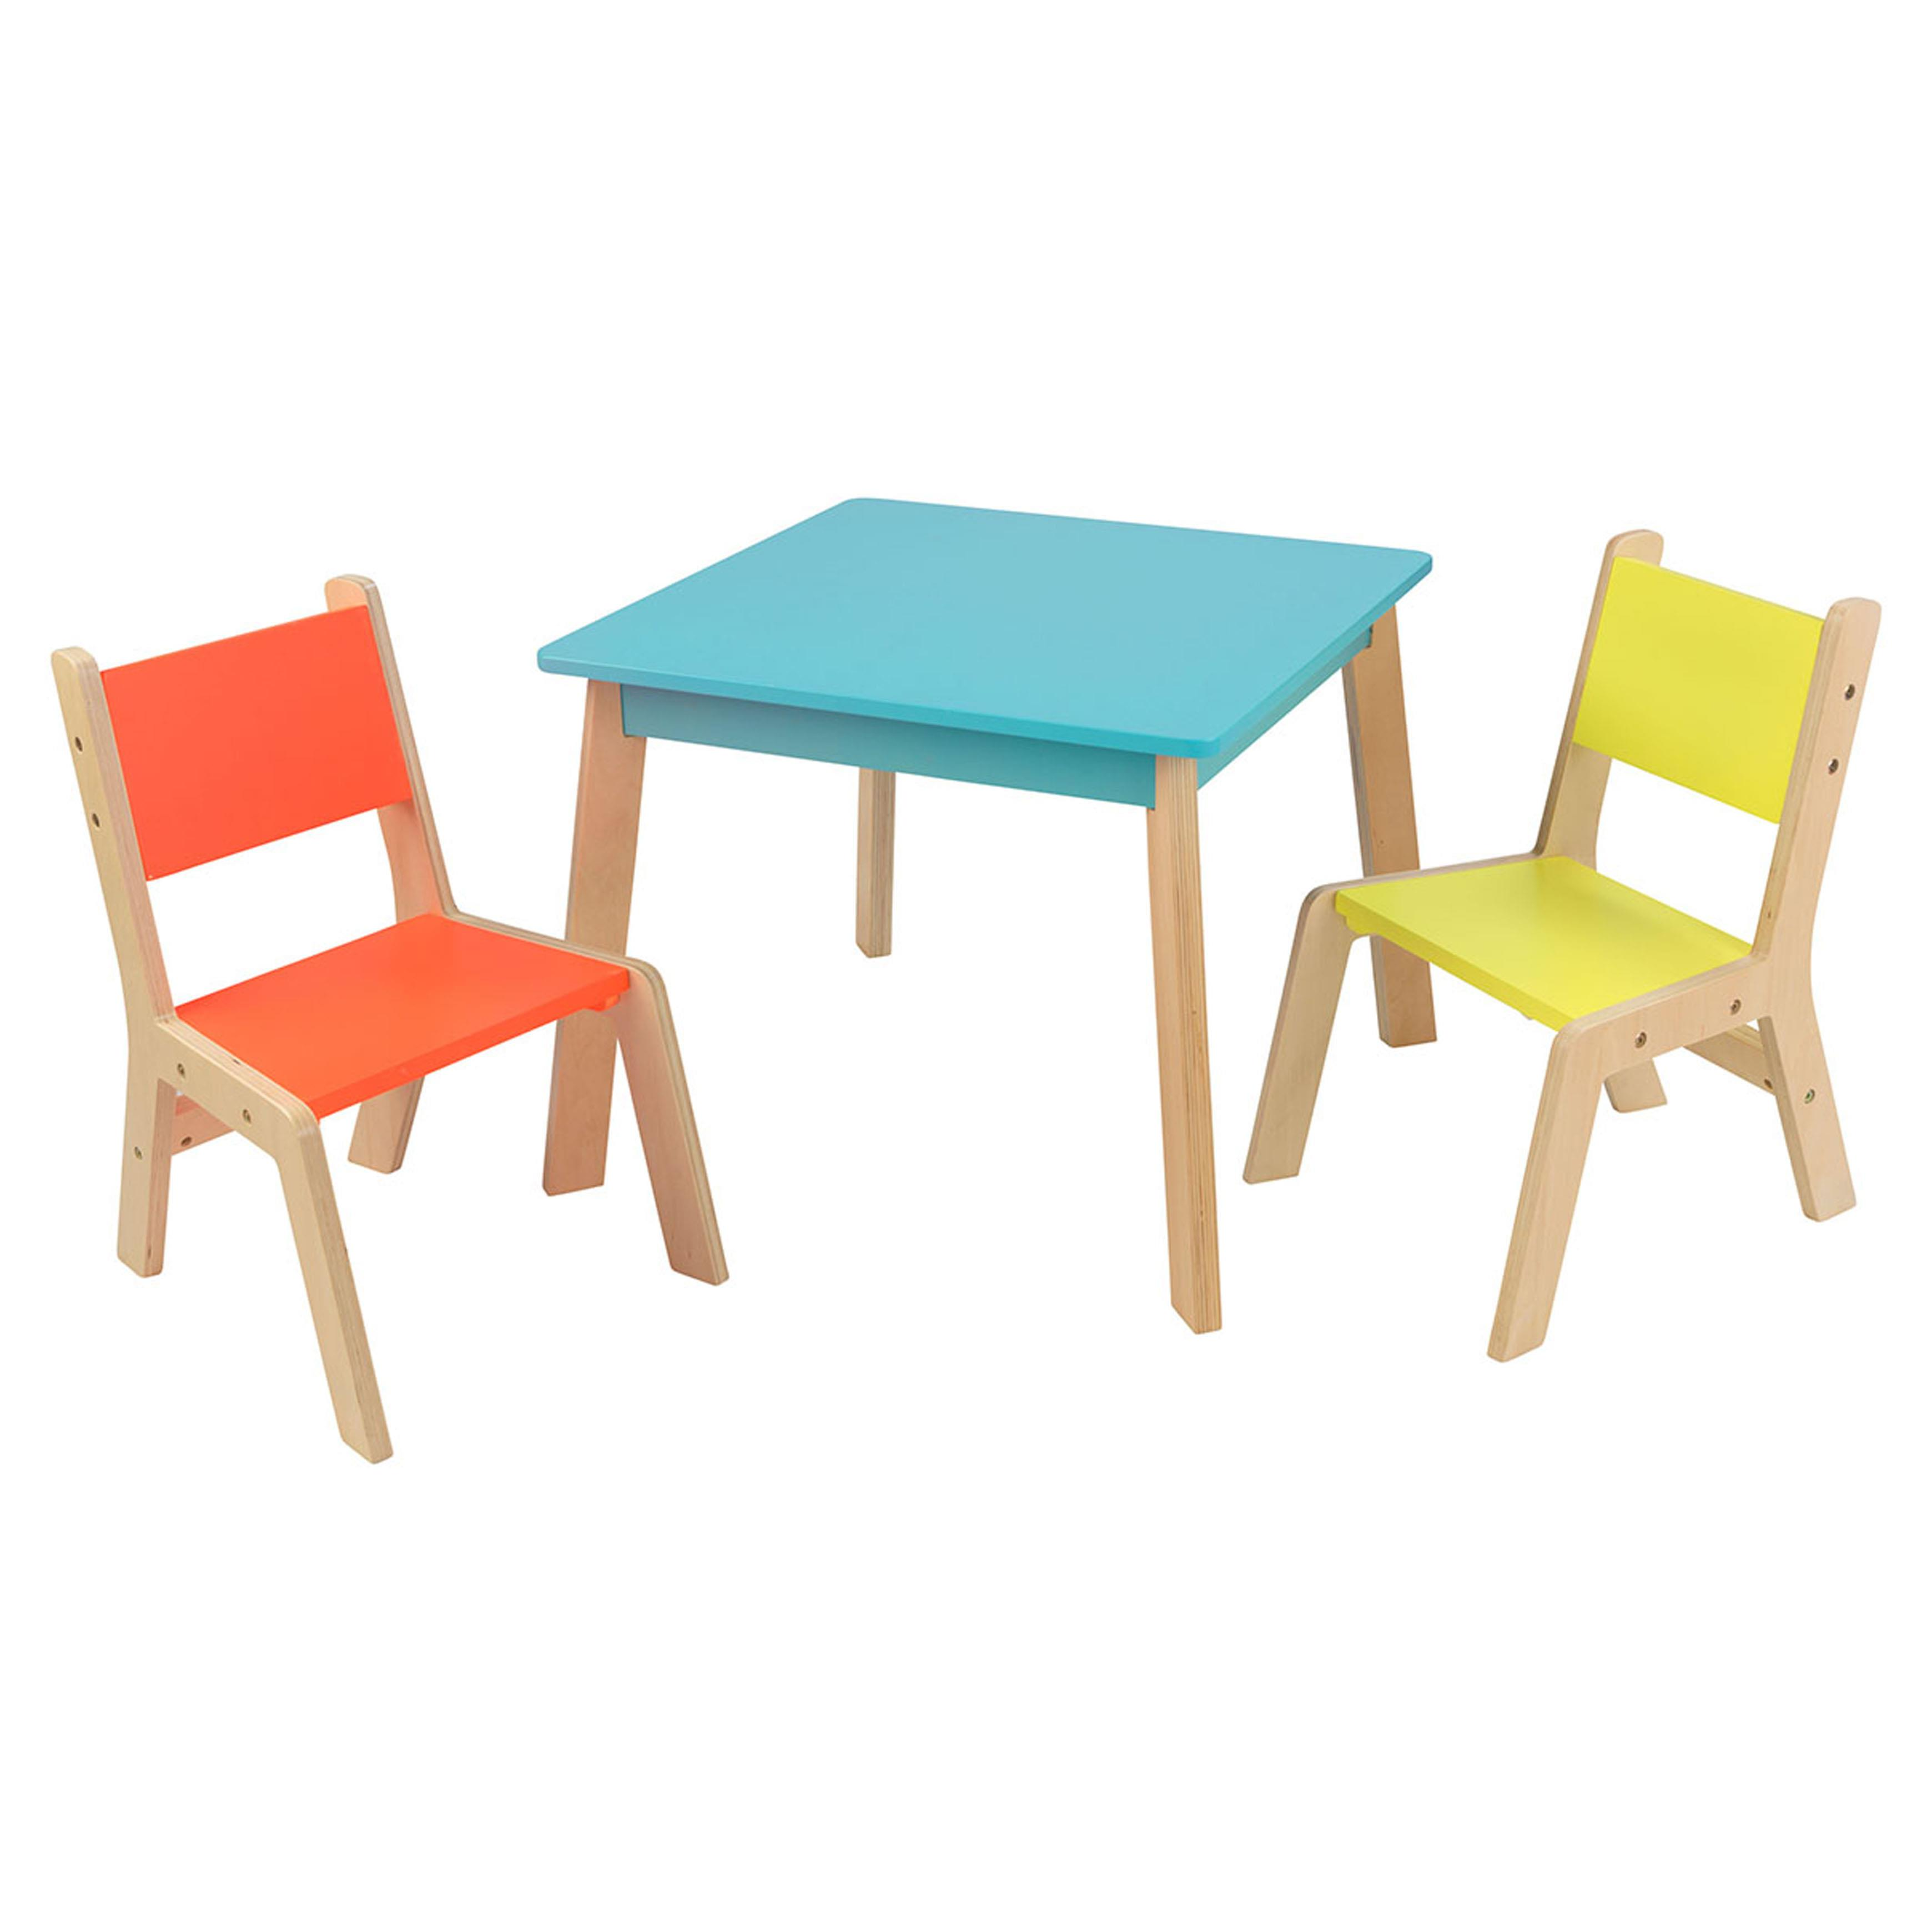 toddler table and chair ikea walmart kids folding table kids table and chairs walmart colorful folding table and chairs white background